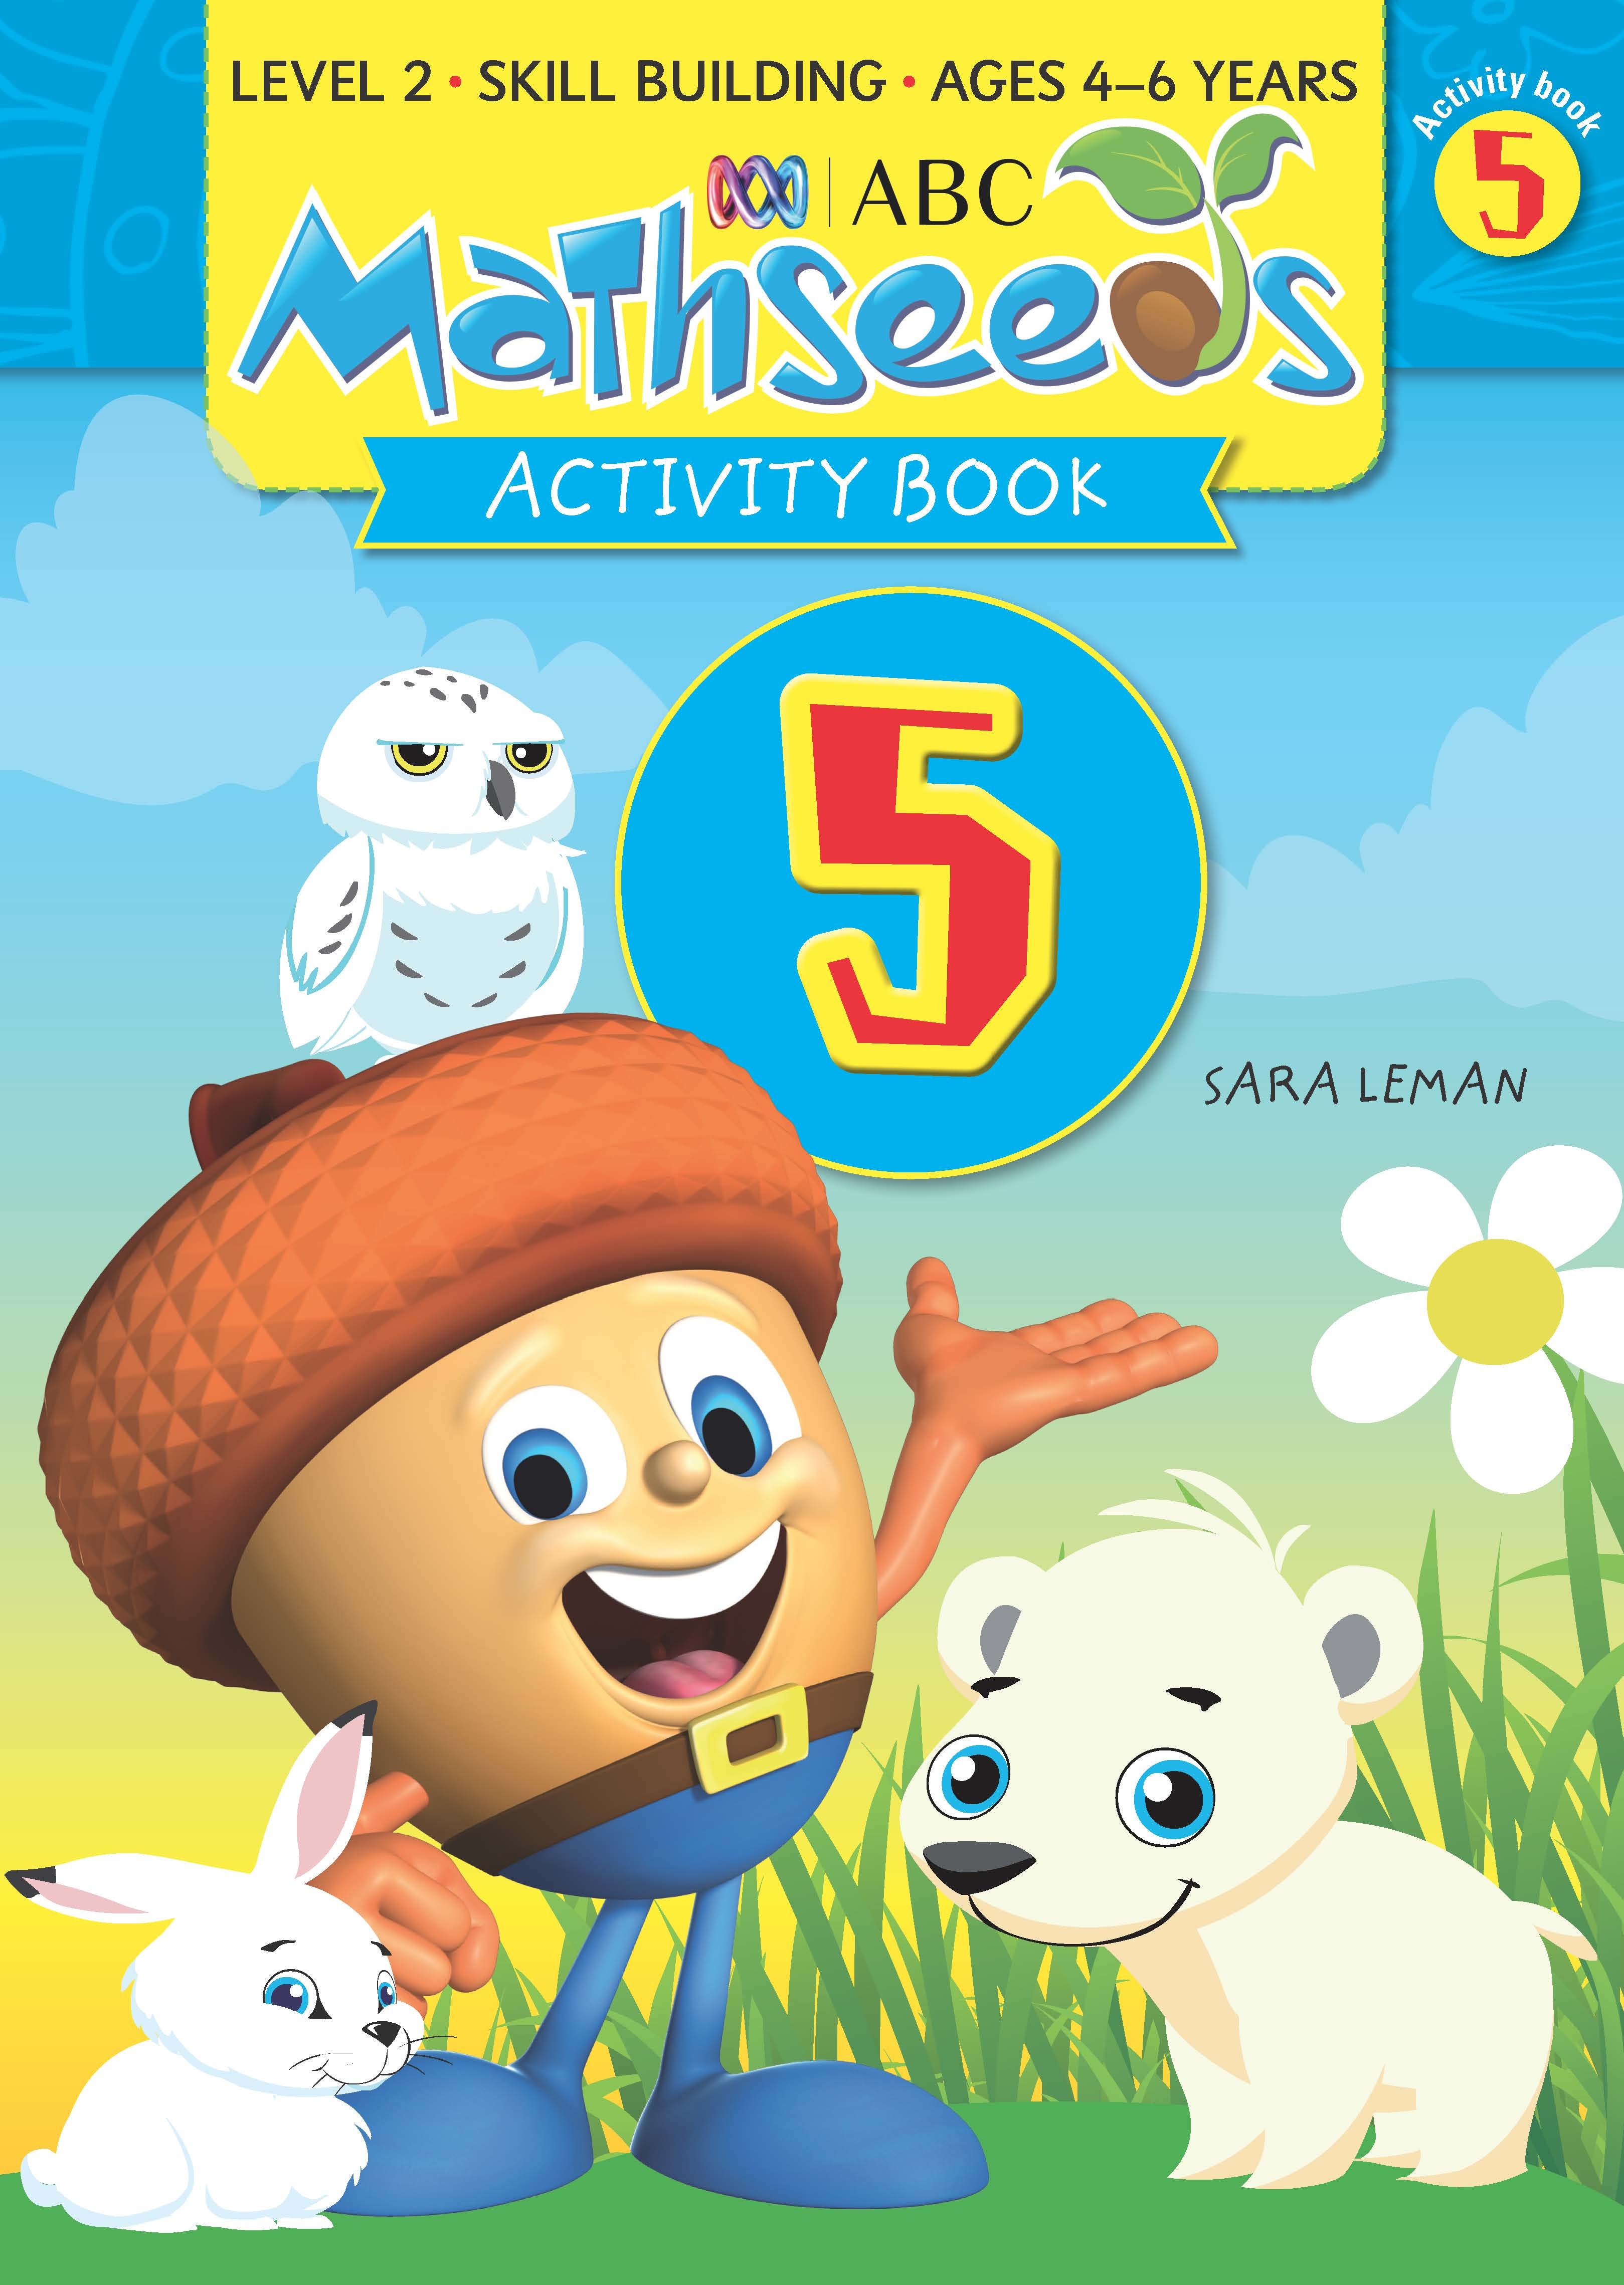 ABC Mathseeds Activity Book 5 Level 2 Ages 4-6